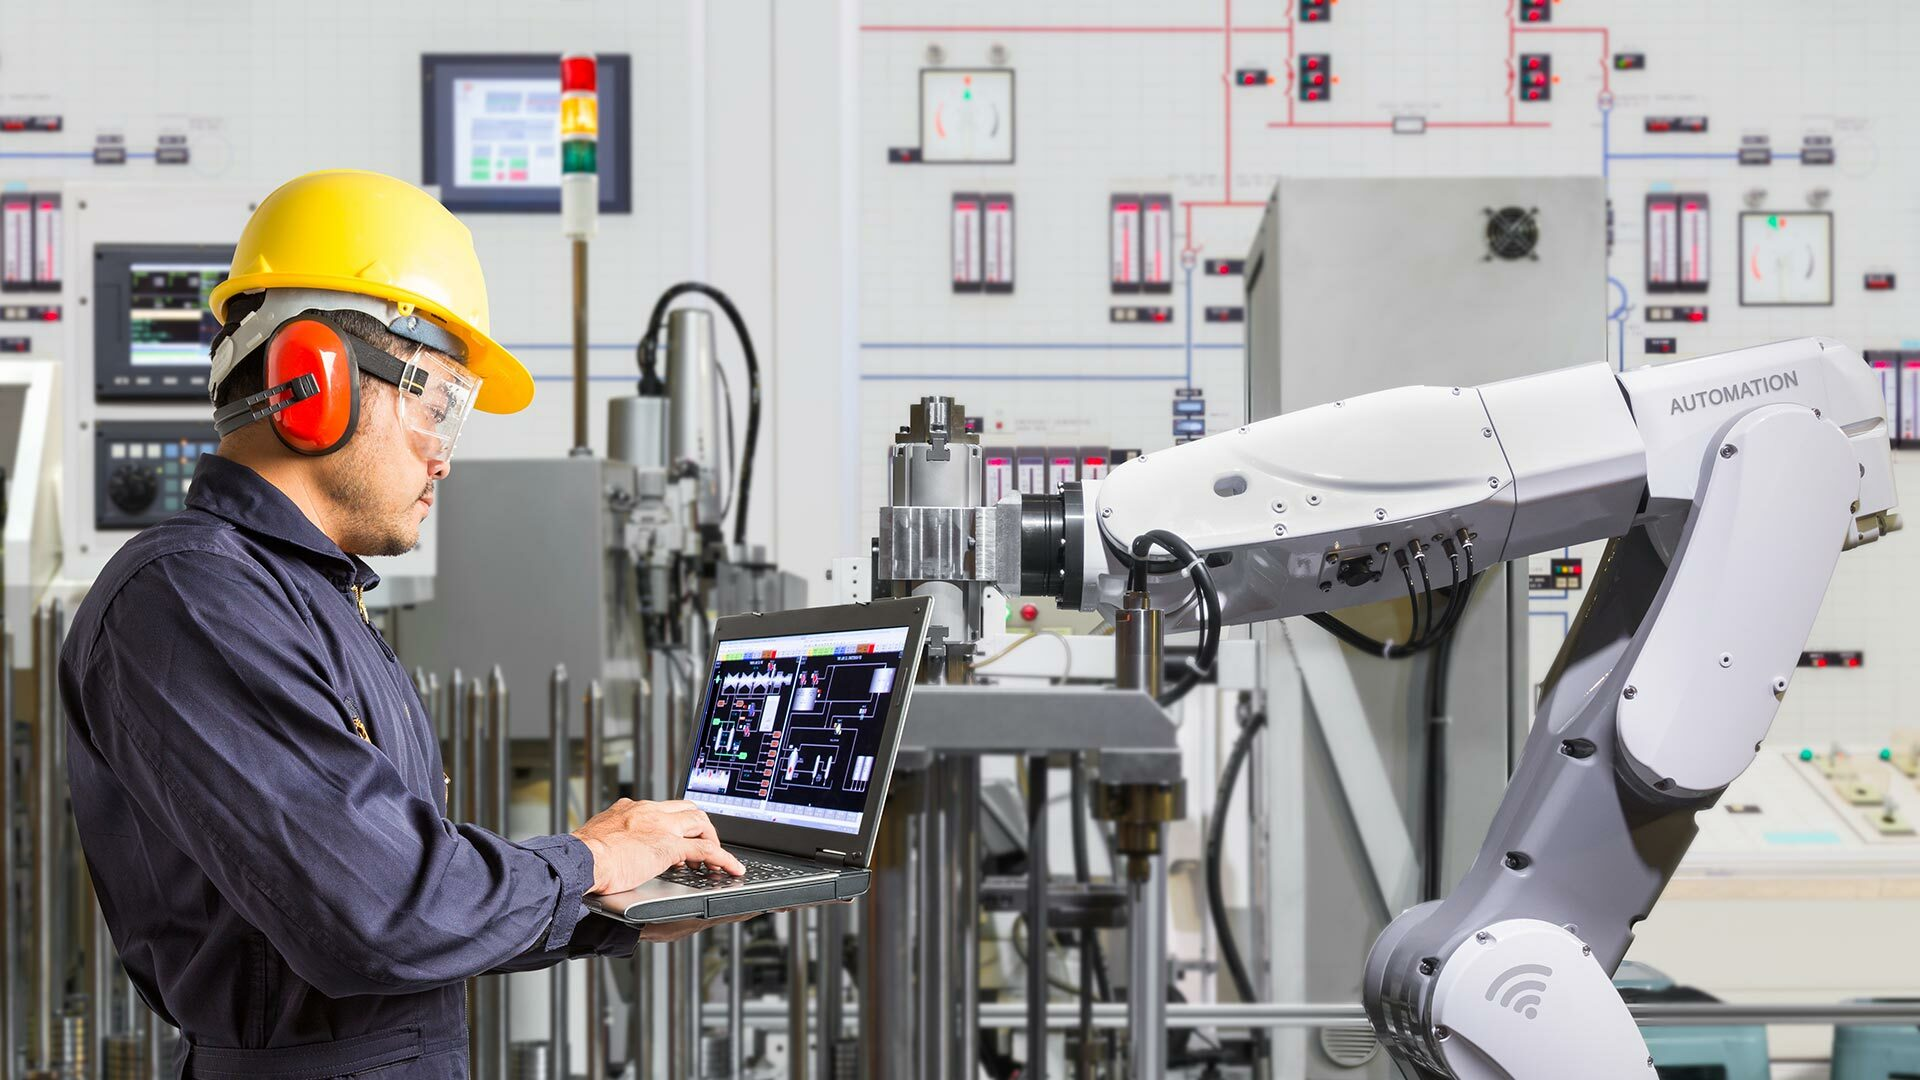 Predictive Maintenance: Getting the most out of your Digital Twin